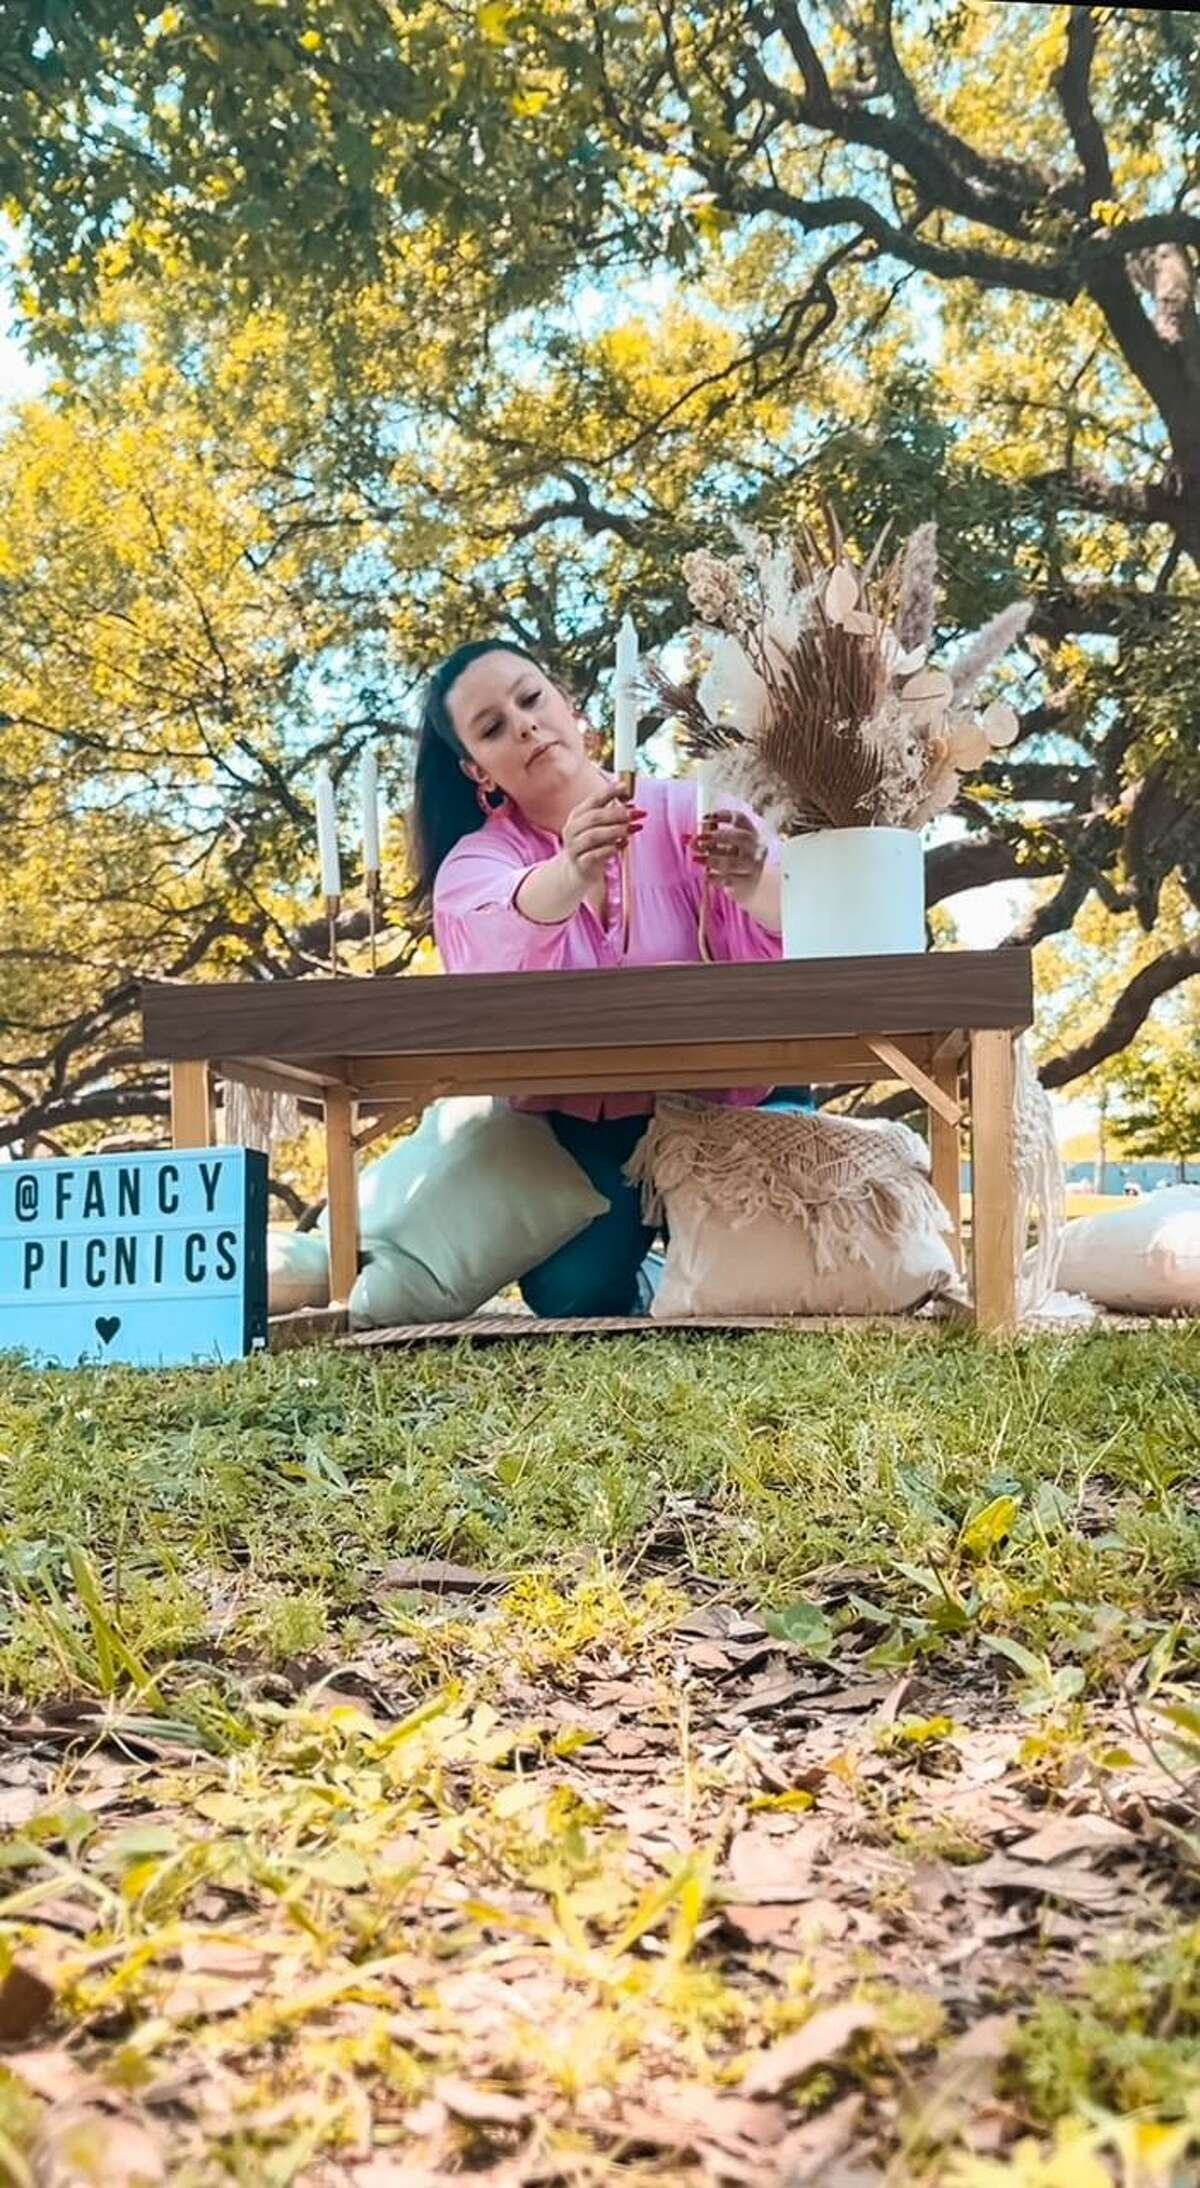 Brenda Vilchis (pictured here) launched Fancy Picnics on Instagram while a sophomore studying hospitality management at University of Houston's Conrad N. Hilton College of Hotel and Restaurant Management